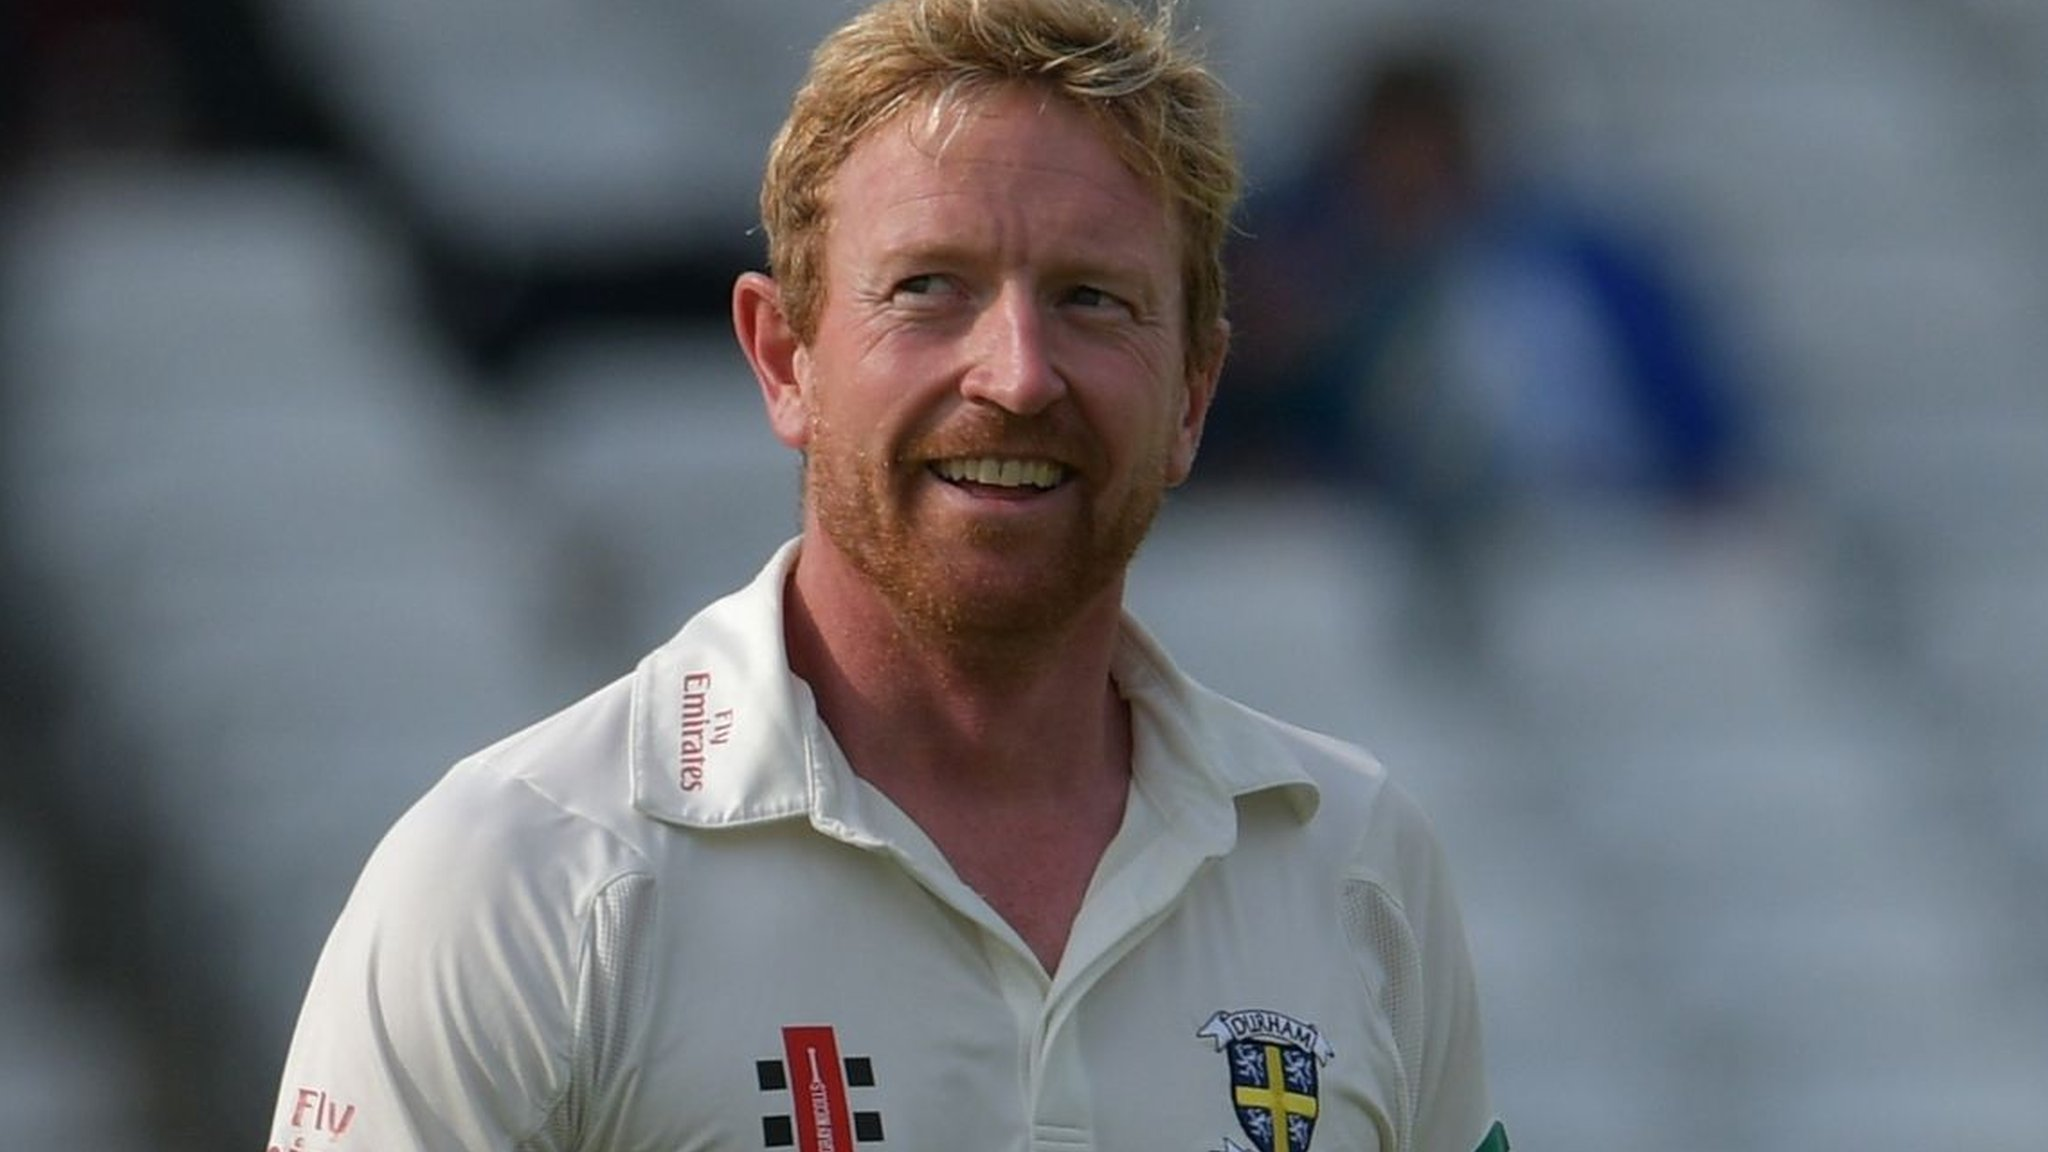 County Championship: Durham start well in Paul Collingwood's farewell game v Middlesex